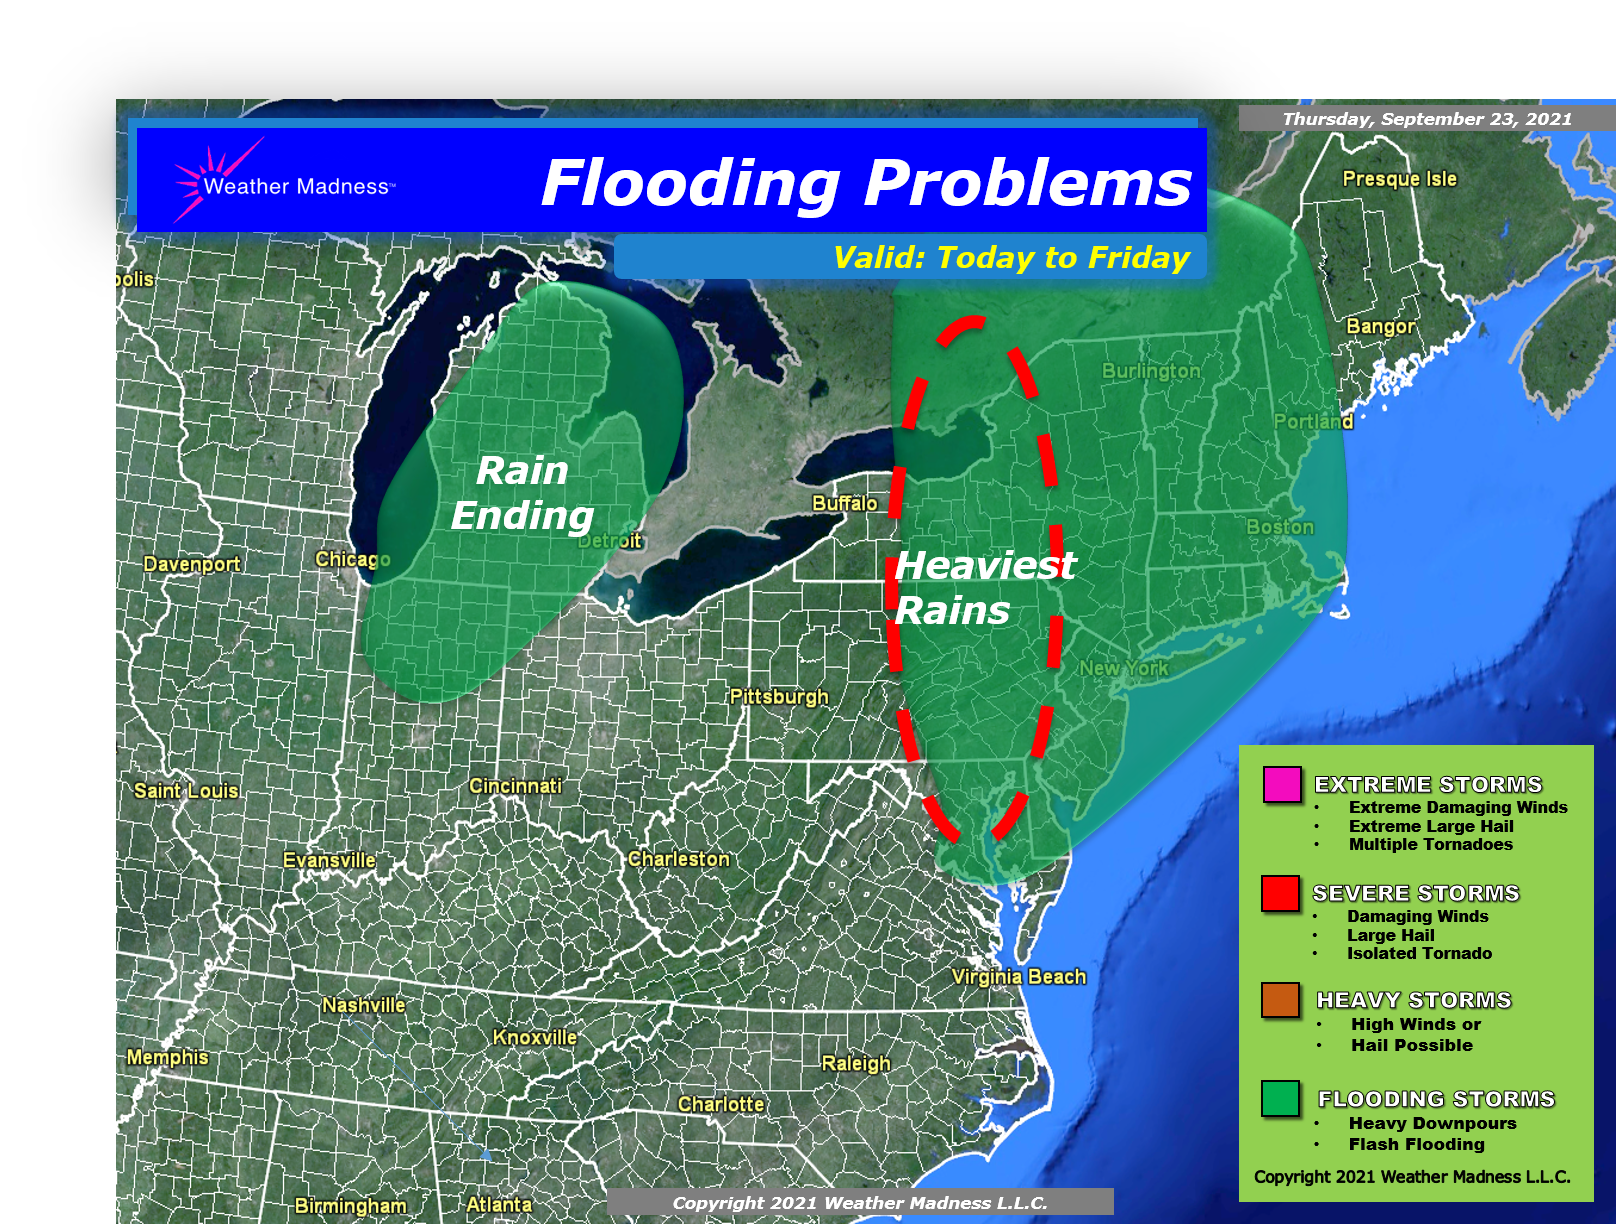 Heavy Rains will Cause Some Flooding Problems